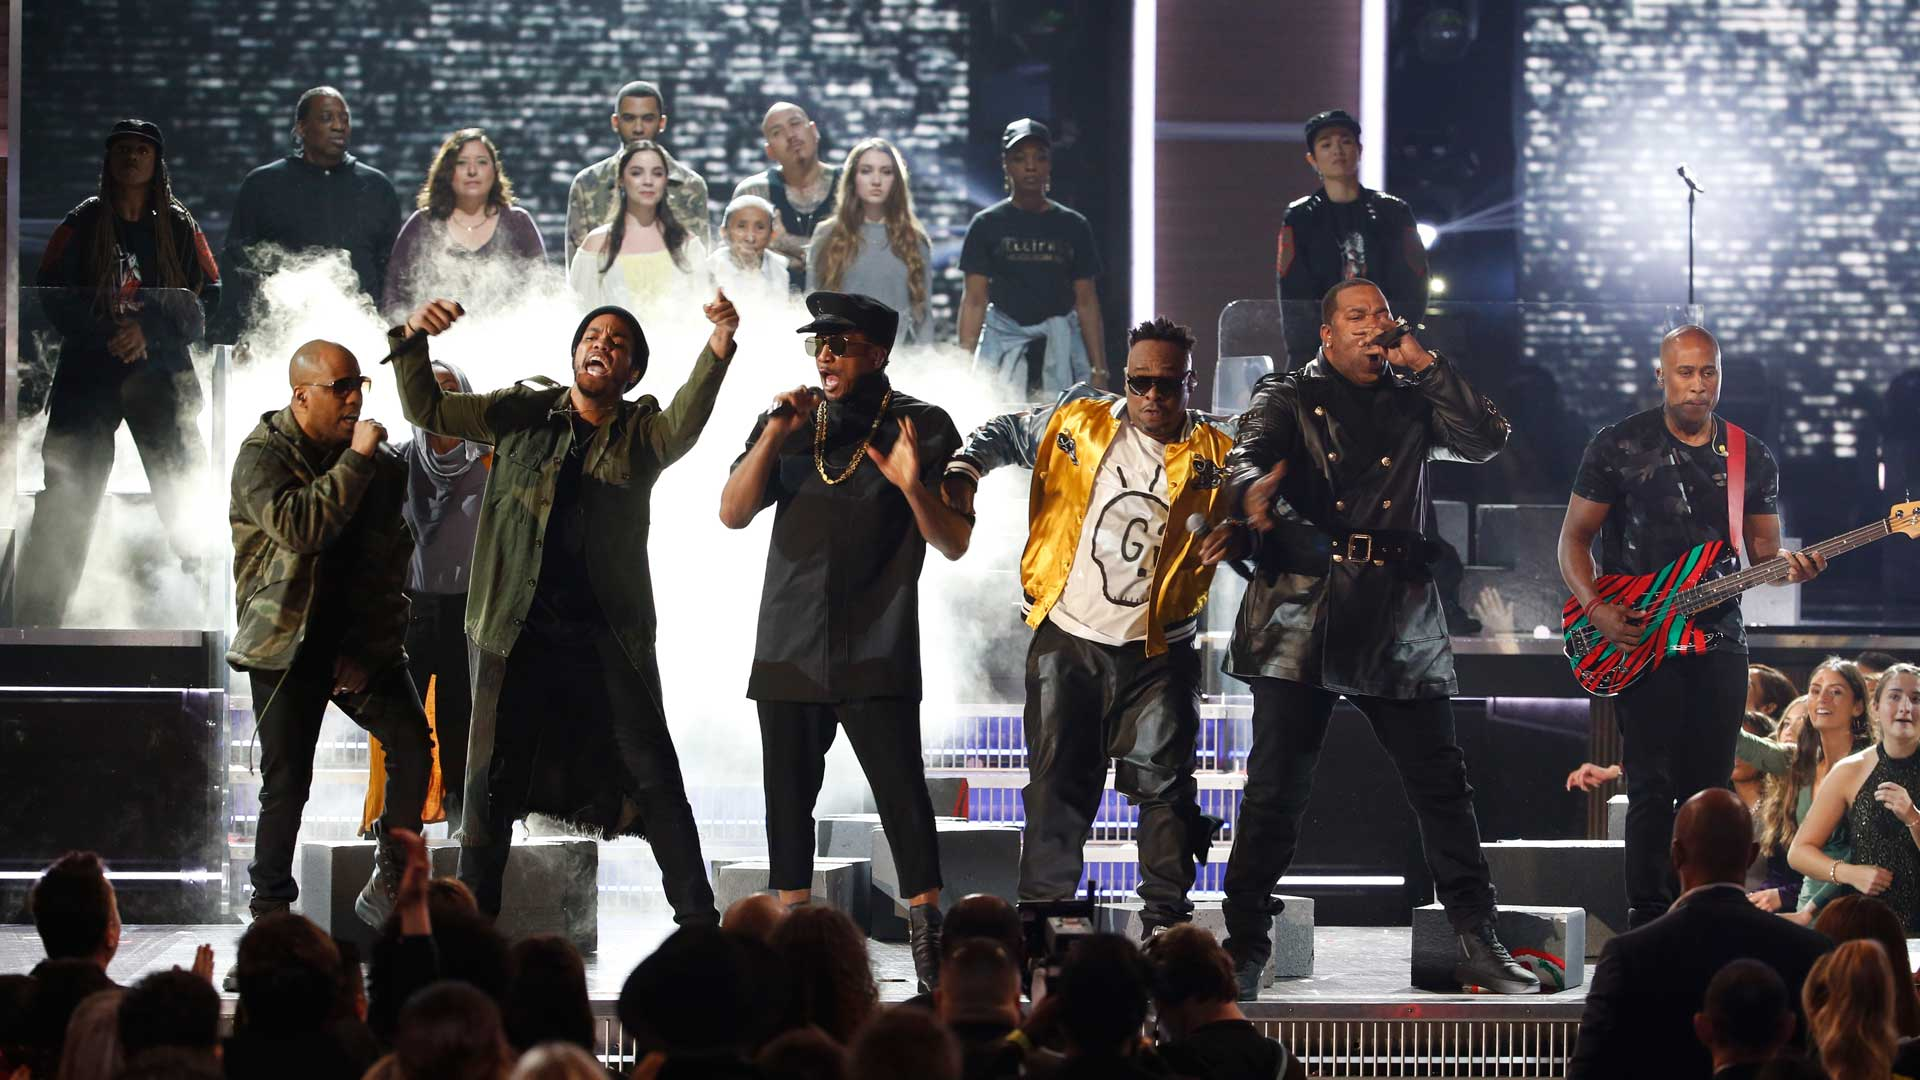 A Tribe Called Quest, Anderson .Paak, and Busta Rhymes perform a medley of